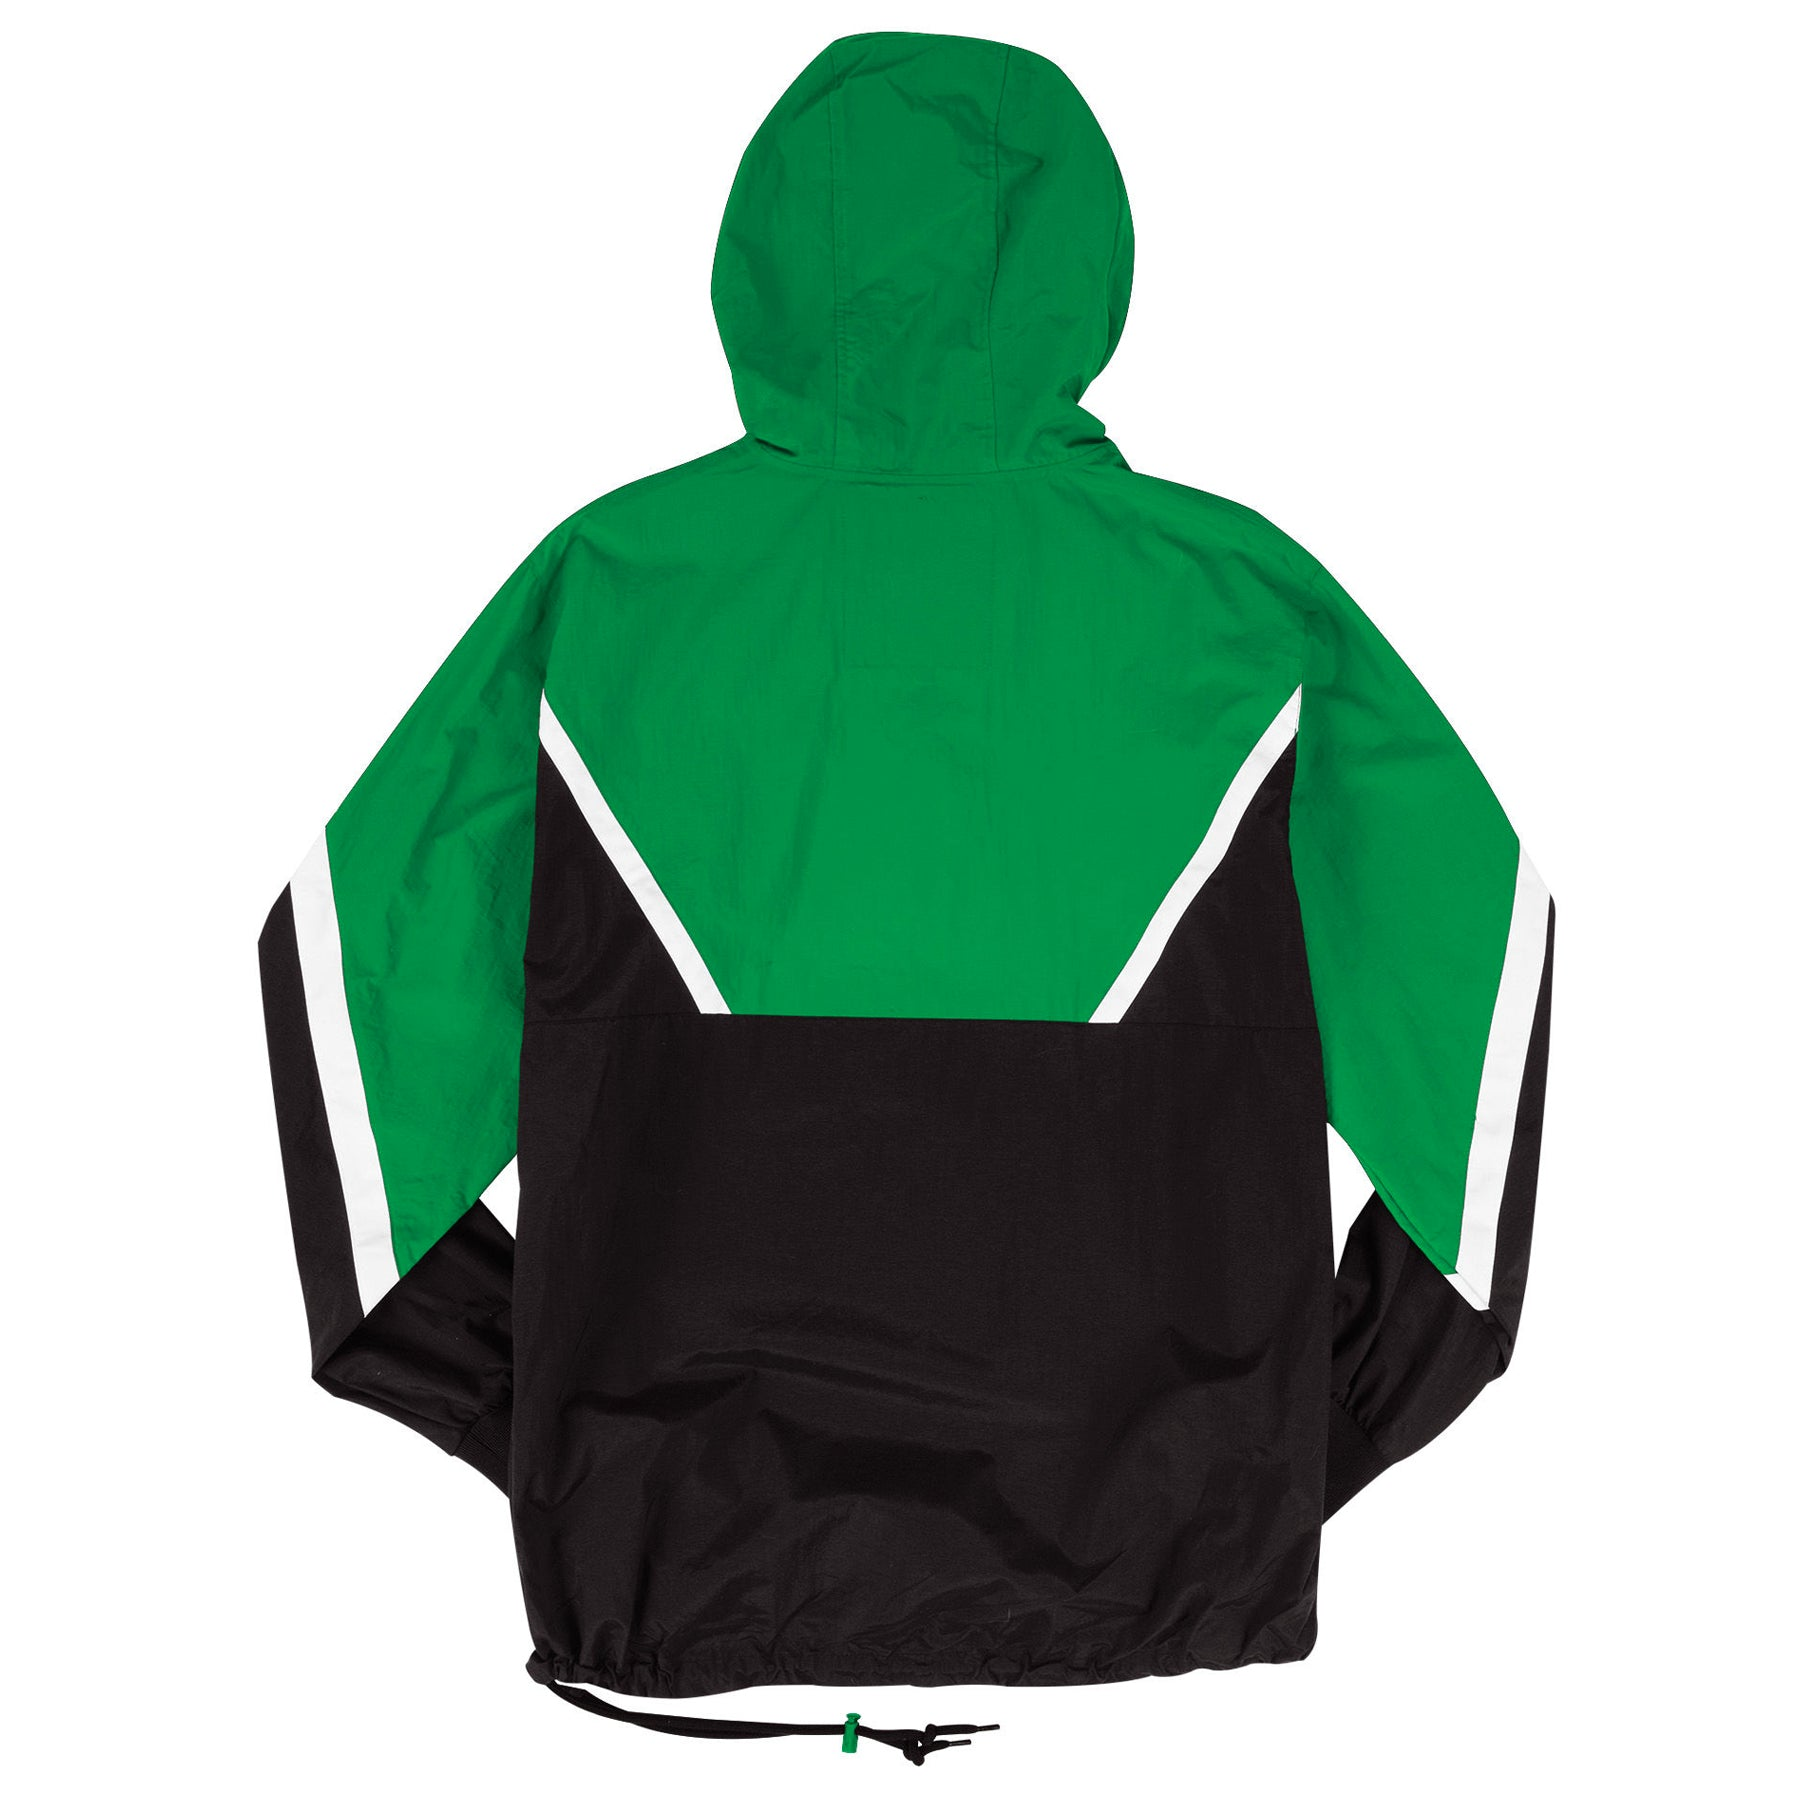 b4f2f04a44c ... the throwback Philadelphia Eagles anorak jacket is kelly green and  black with white accents